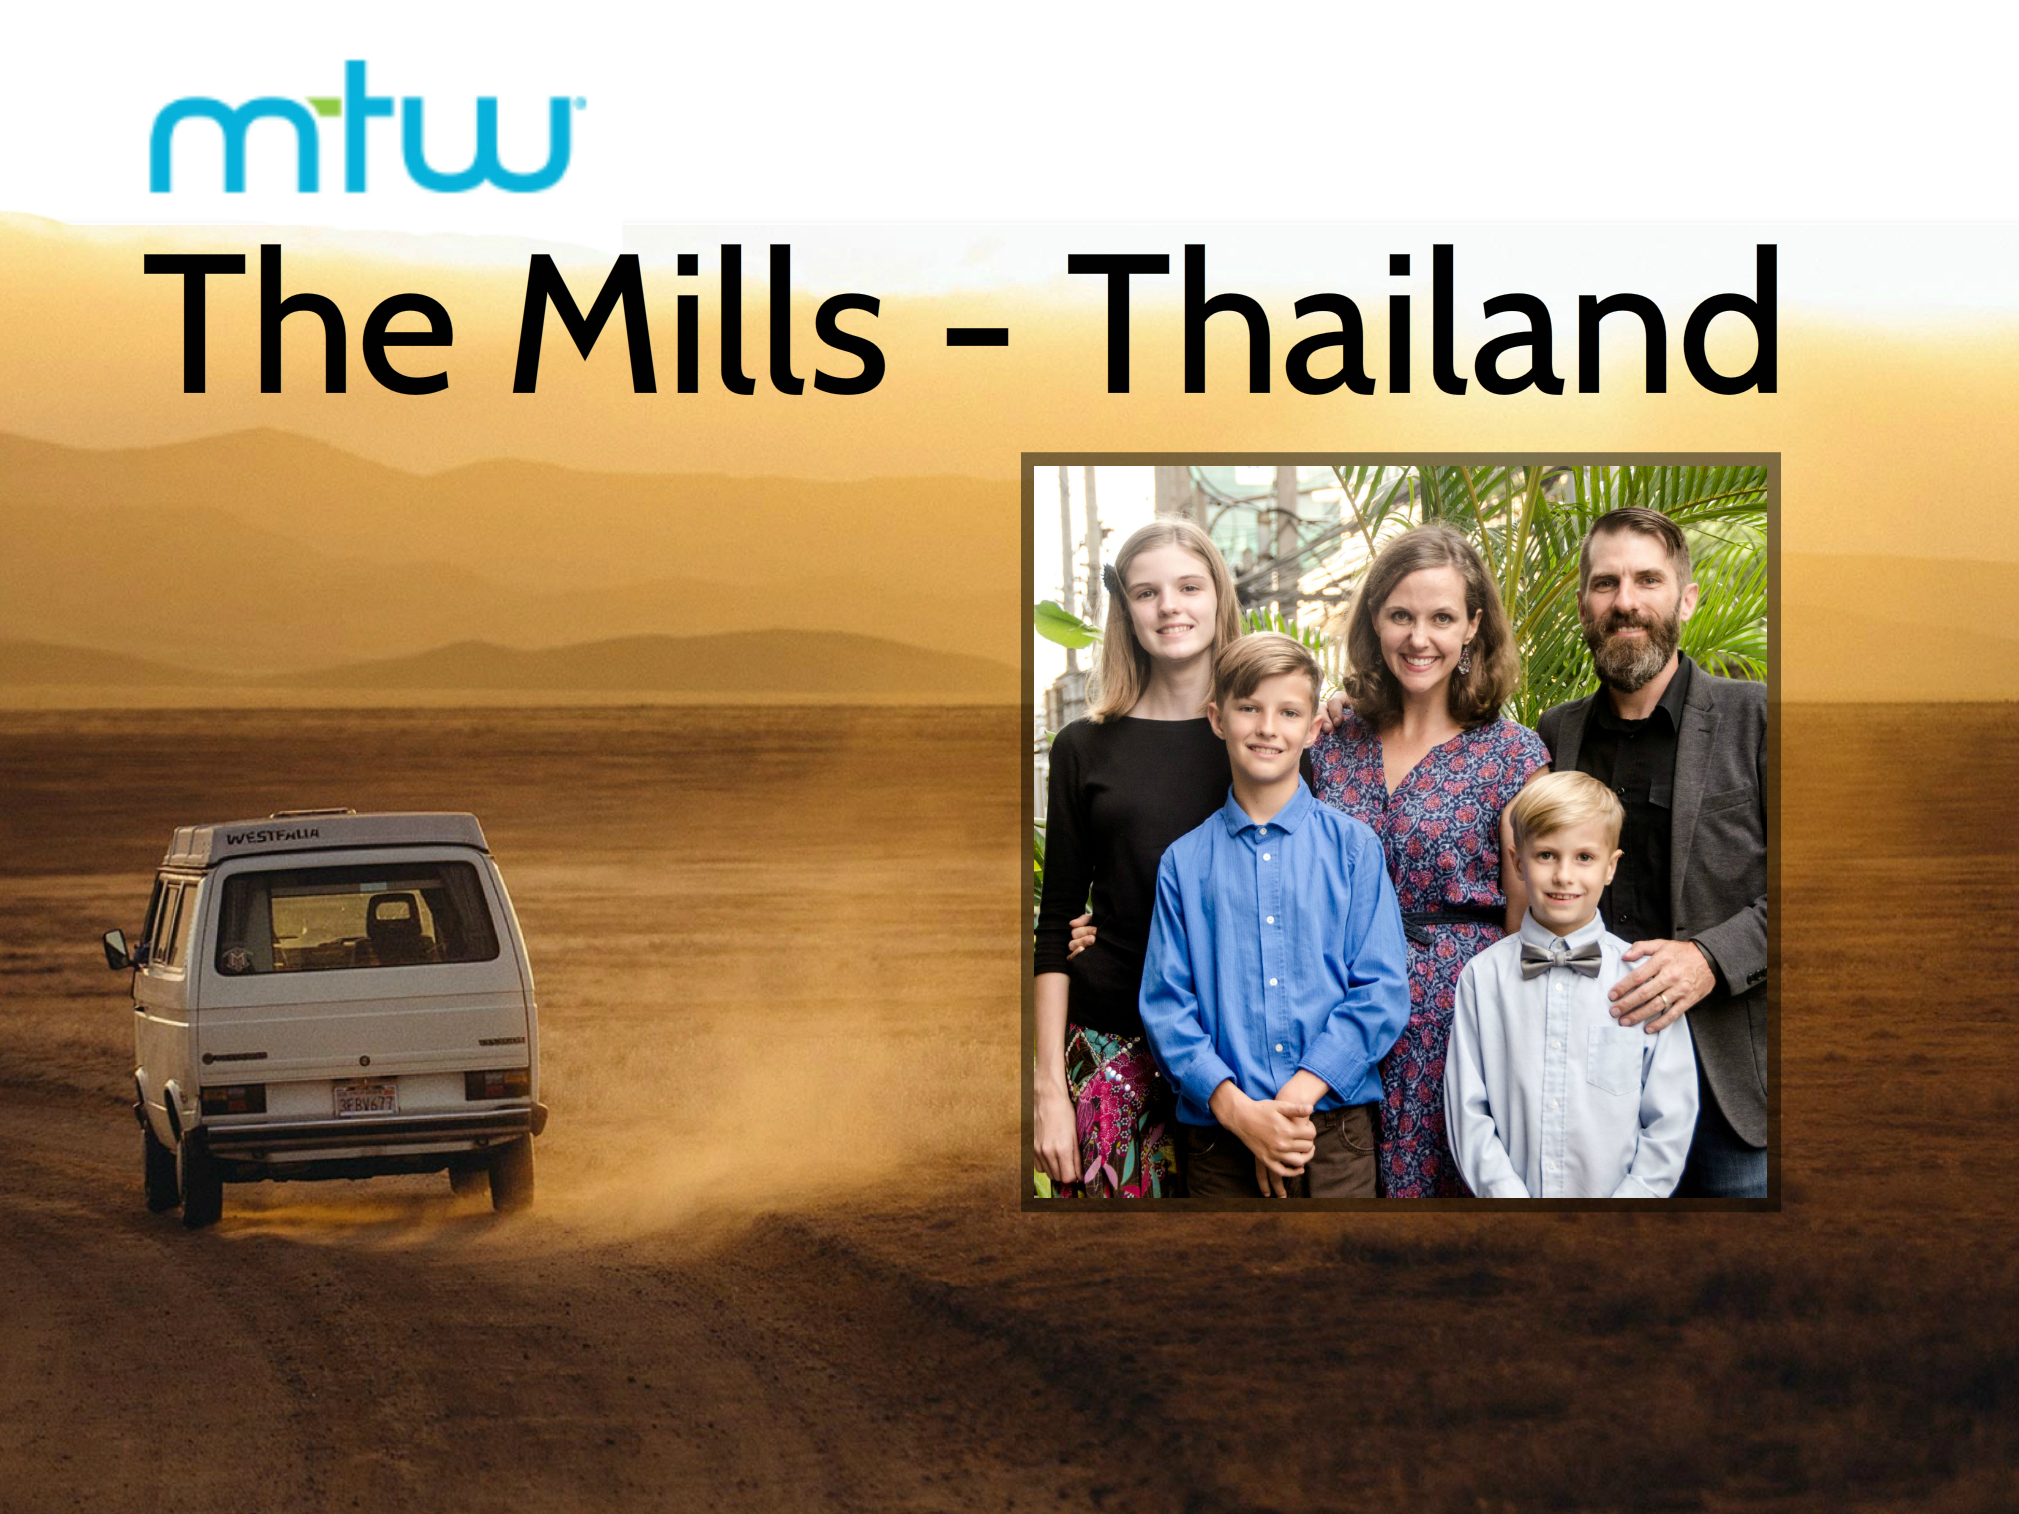 The Mills in Thailand